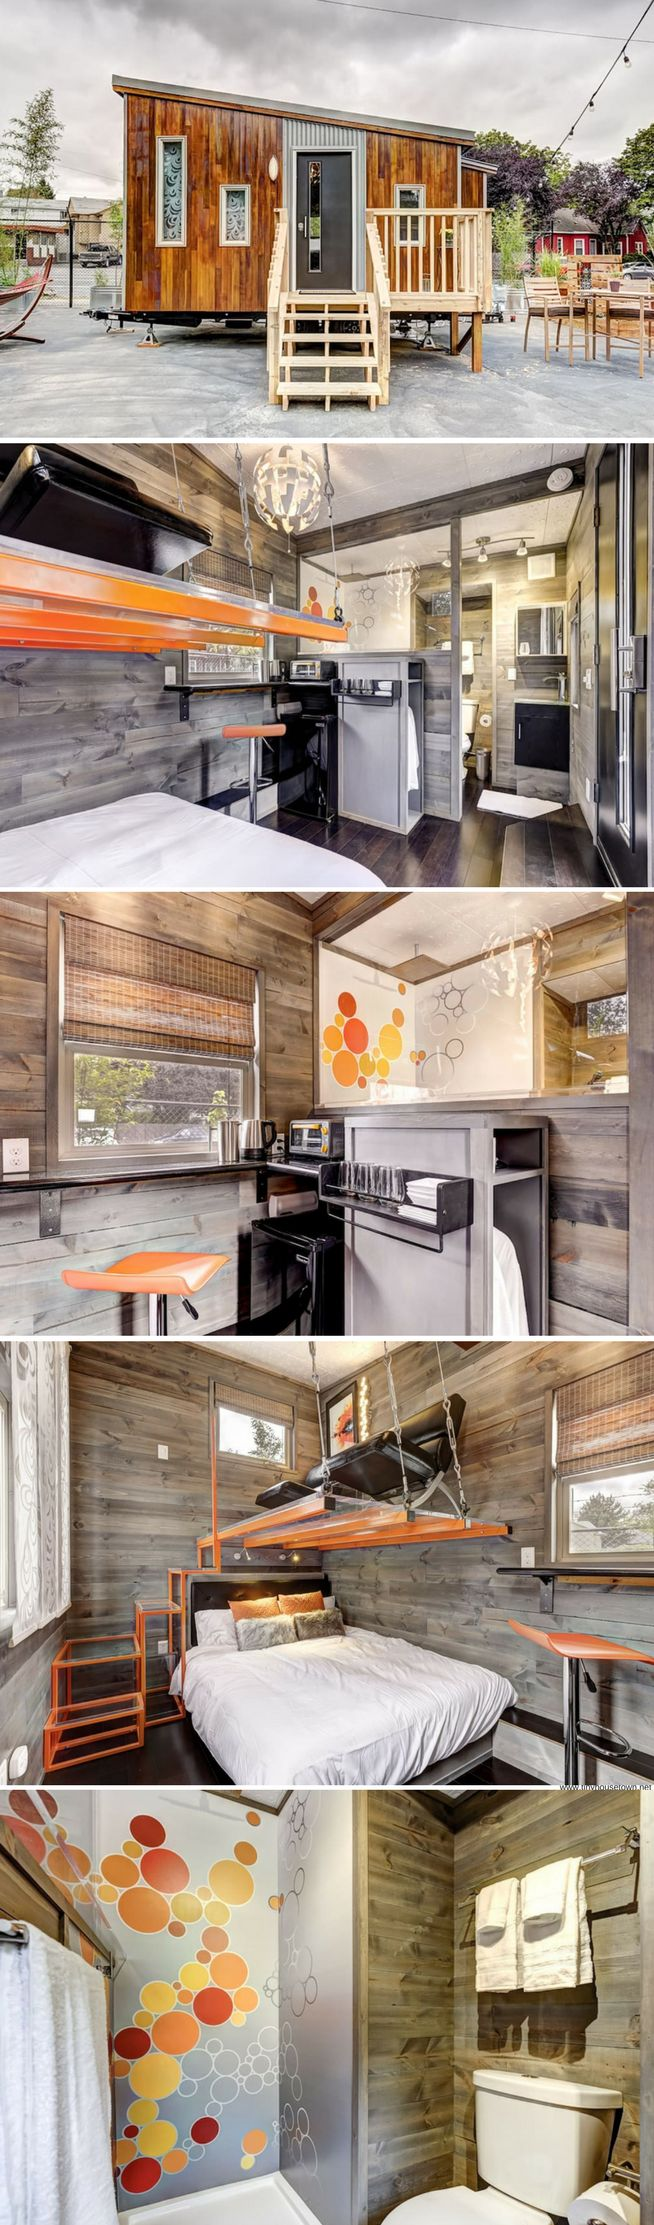 modern tiny house 150 sq ft turn that couch and bed into a